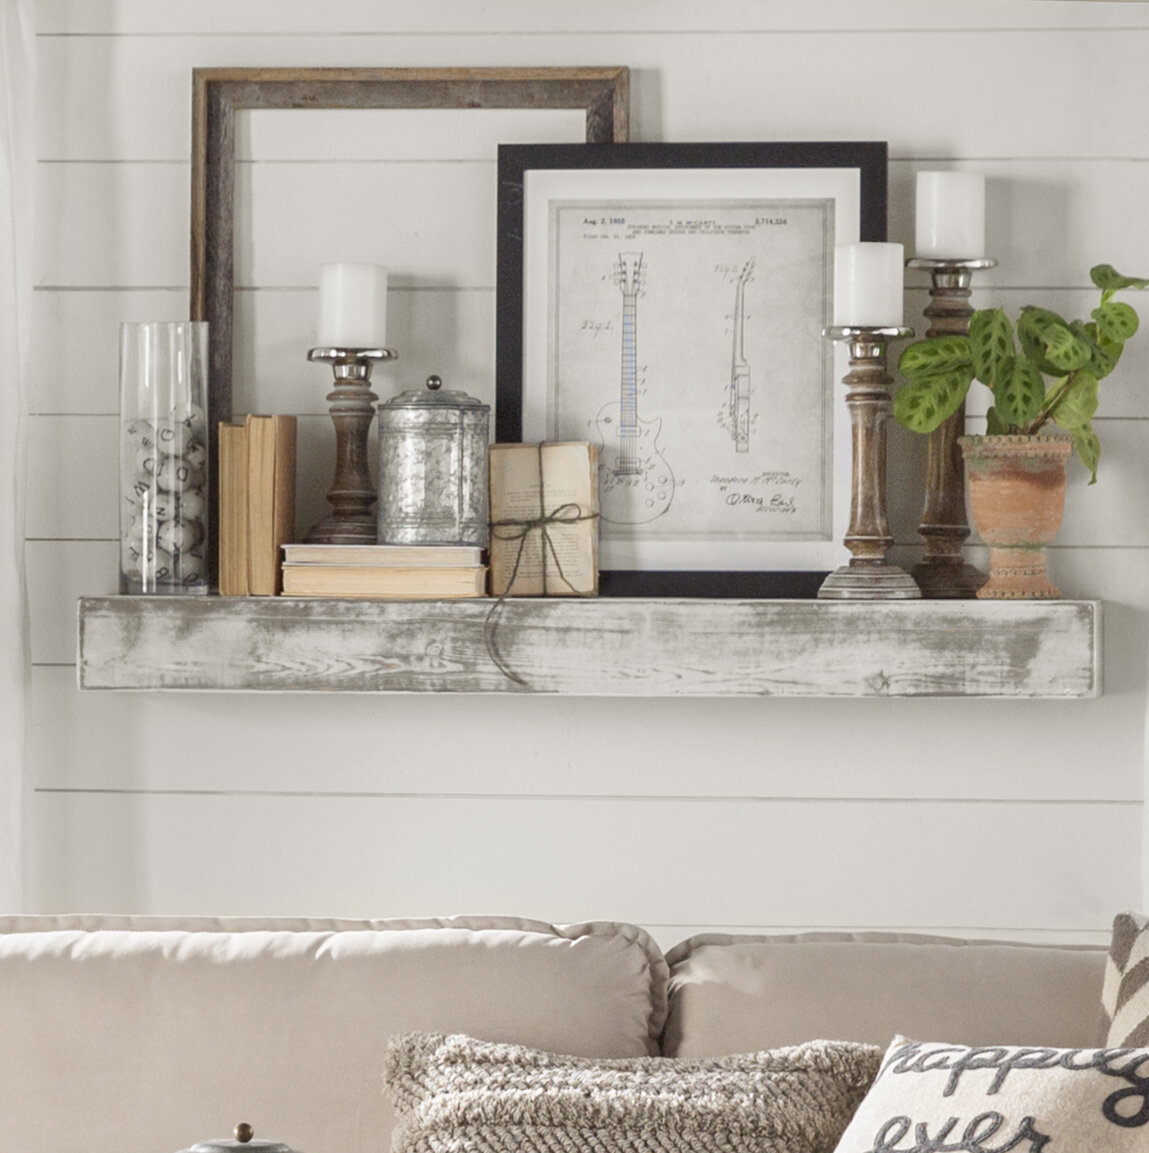 Pdf Tv Stand Wall Design Plans Diy Free Decorative Wood: Essex Hand Crafted Wood Products Floating Shelf In Shabby